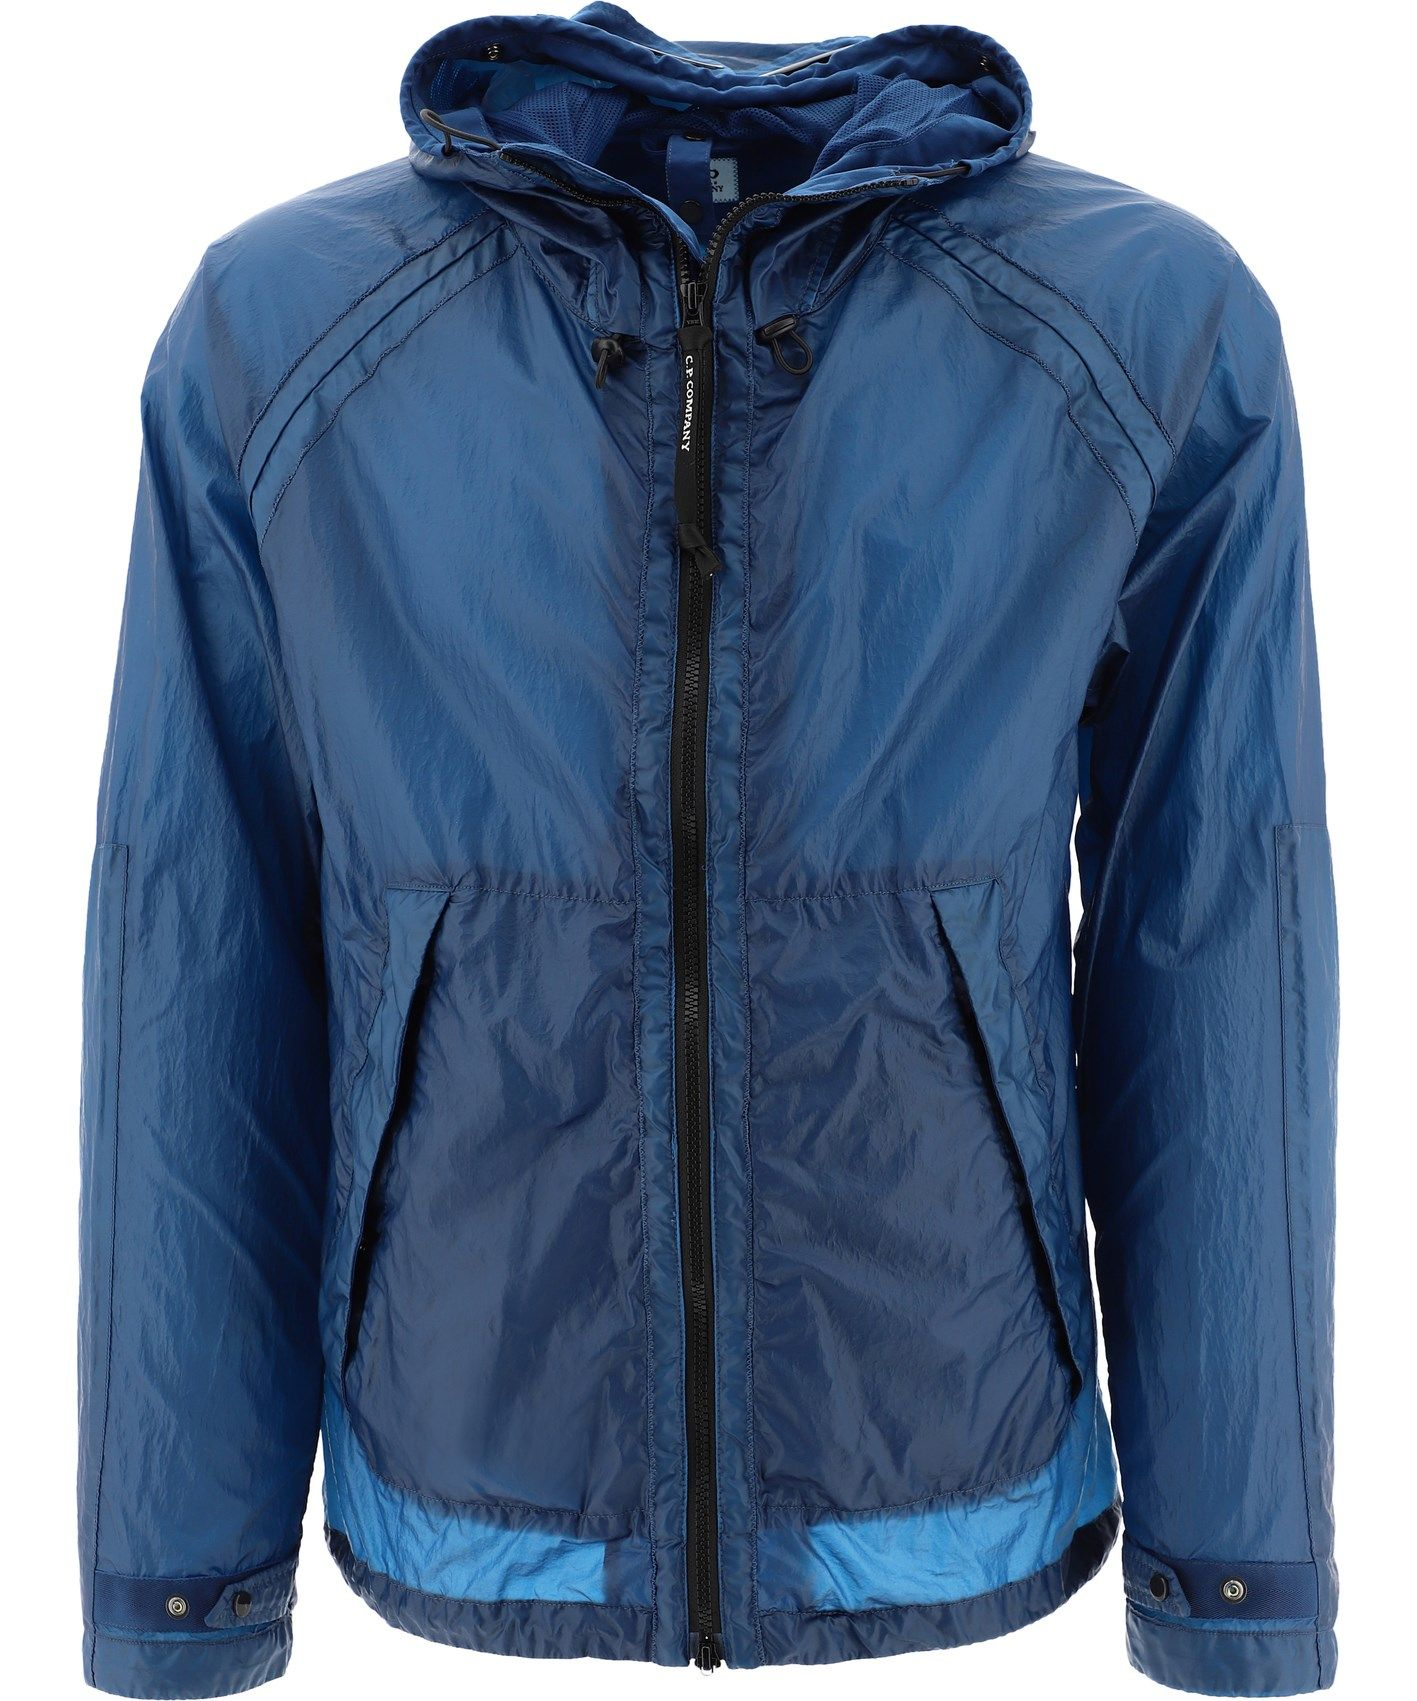 C.p. Company Jackets CP COMPANY MEN'S 10CMOW181A005576G870 BLUE POLYAMIDE OUTERWEAR JACKET